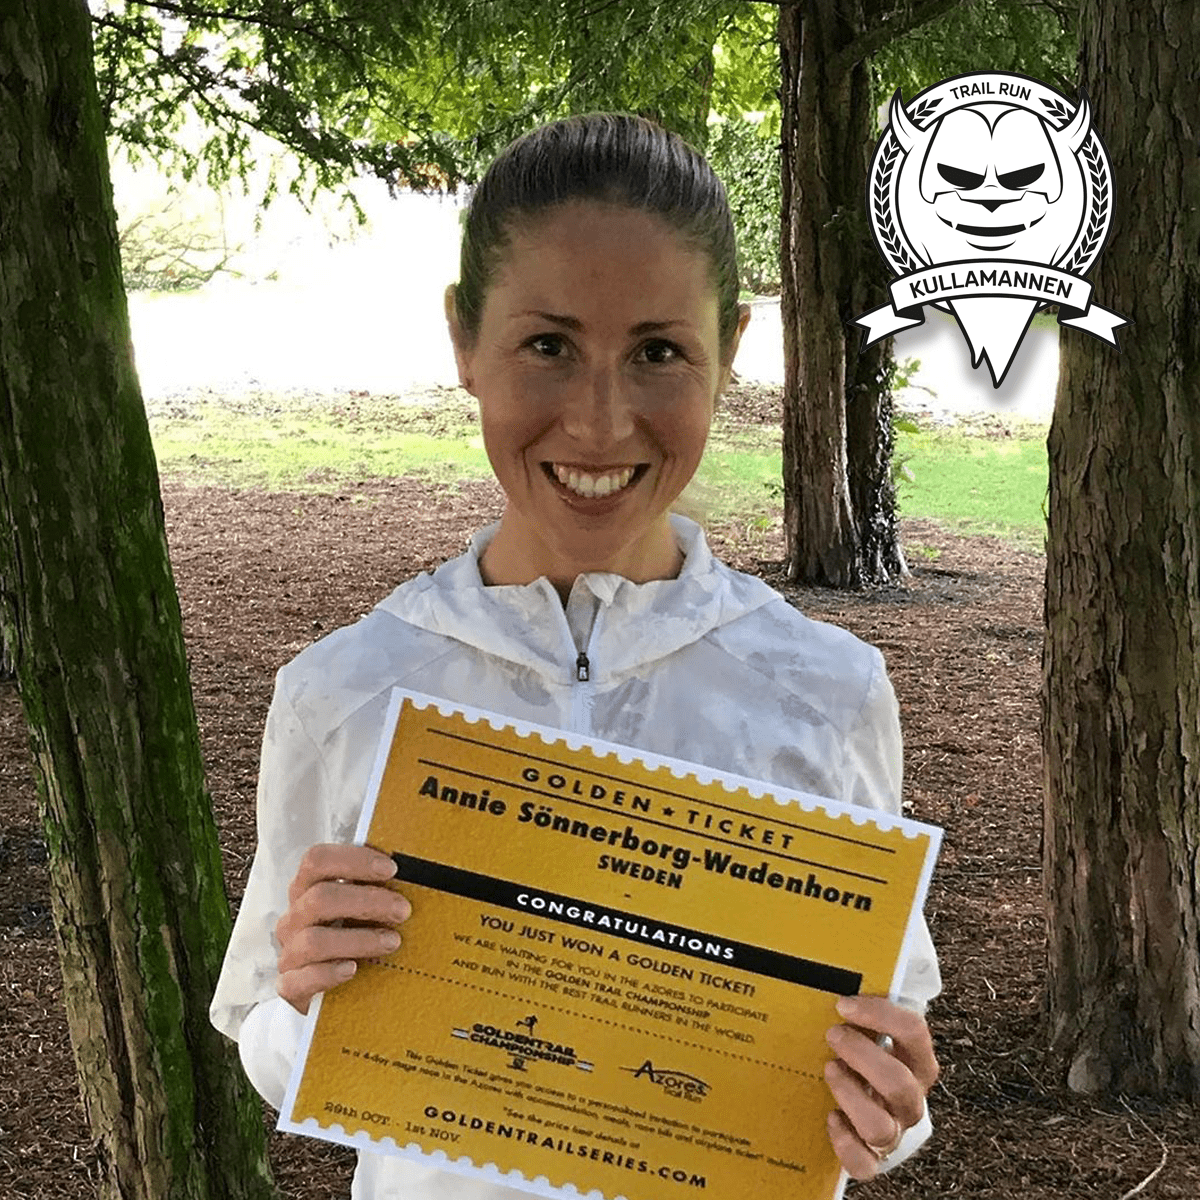 Annie Sönnerborg-Wadenhorn Golden Ticket winner